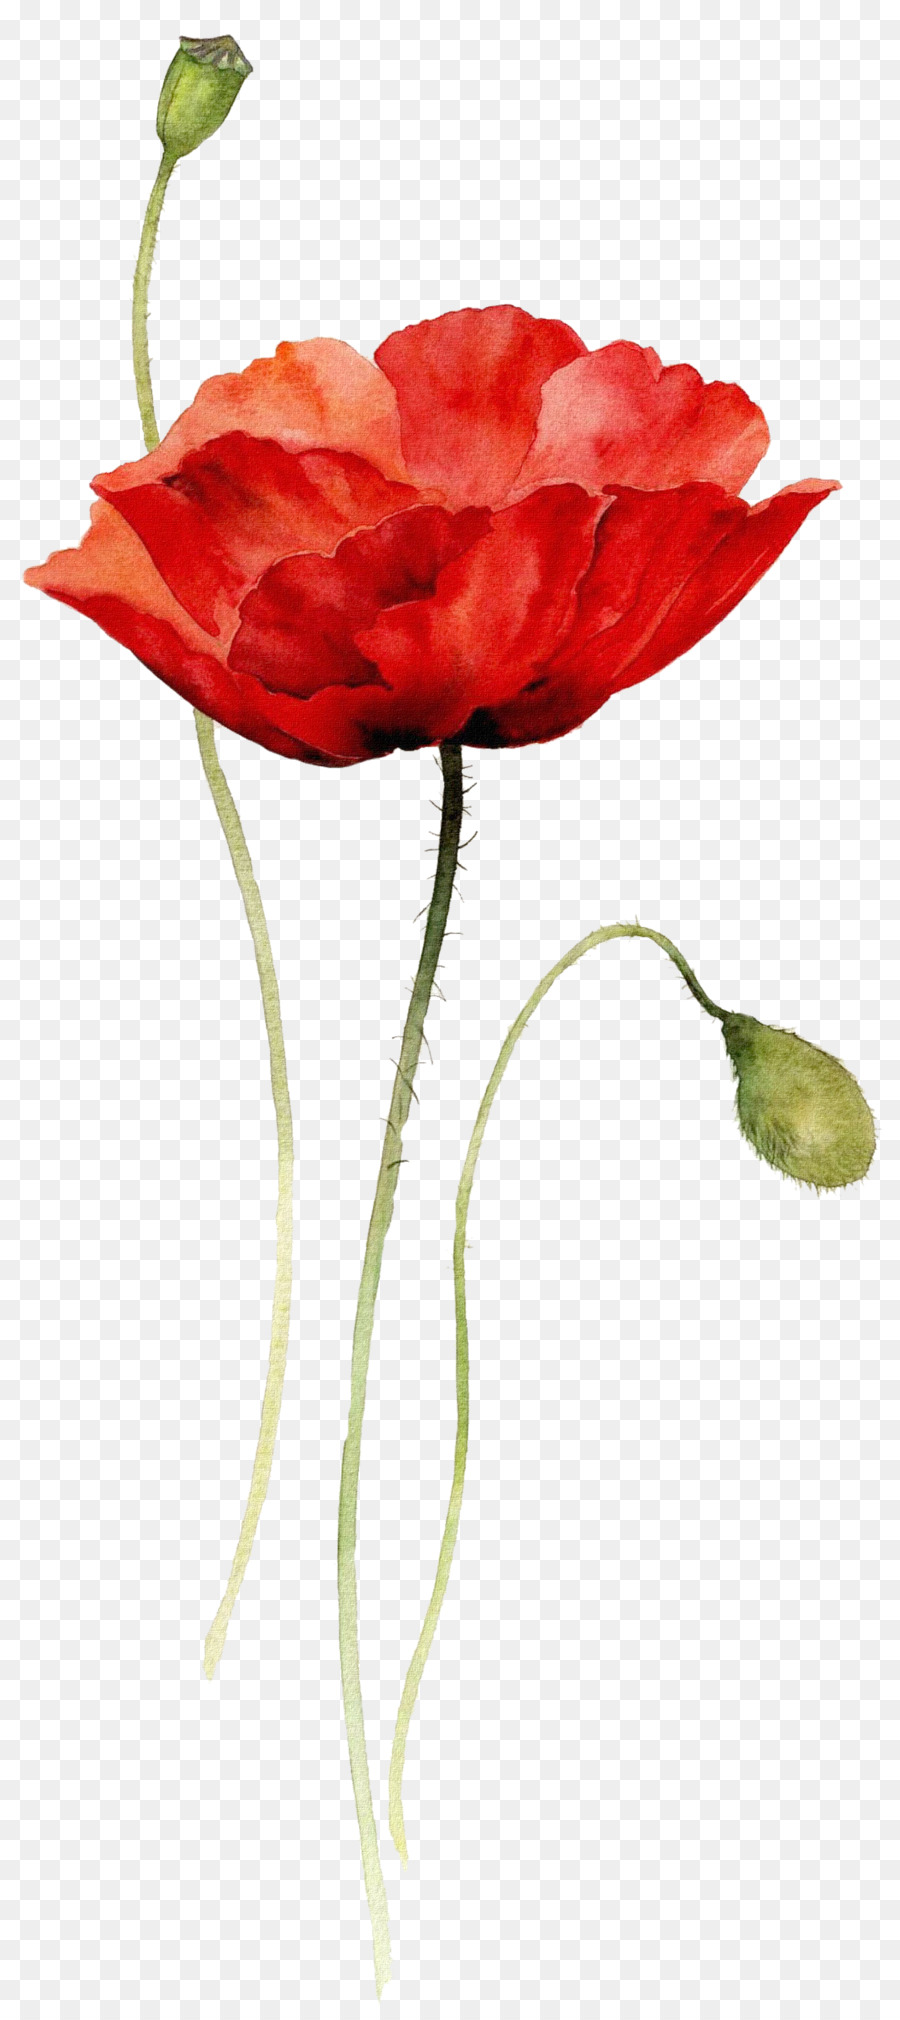 Watercolor Painting Drawing Flower Poppy Watercolor Flowers Png